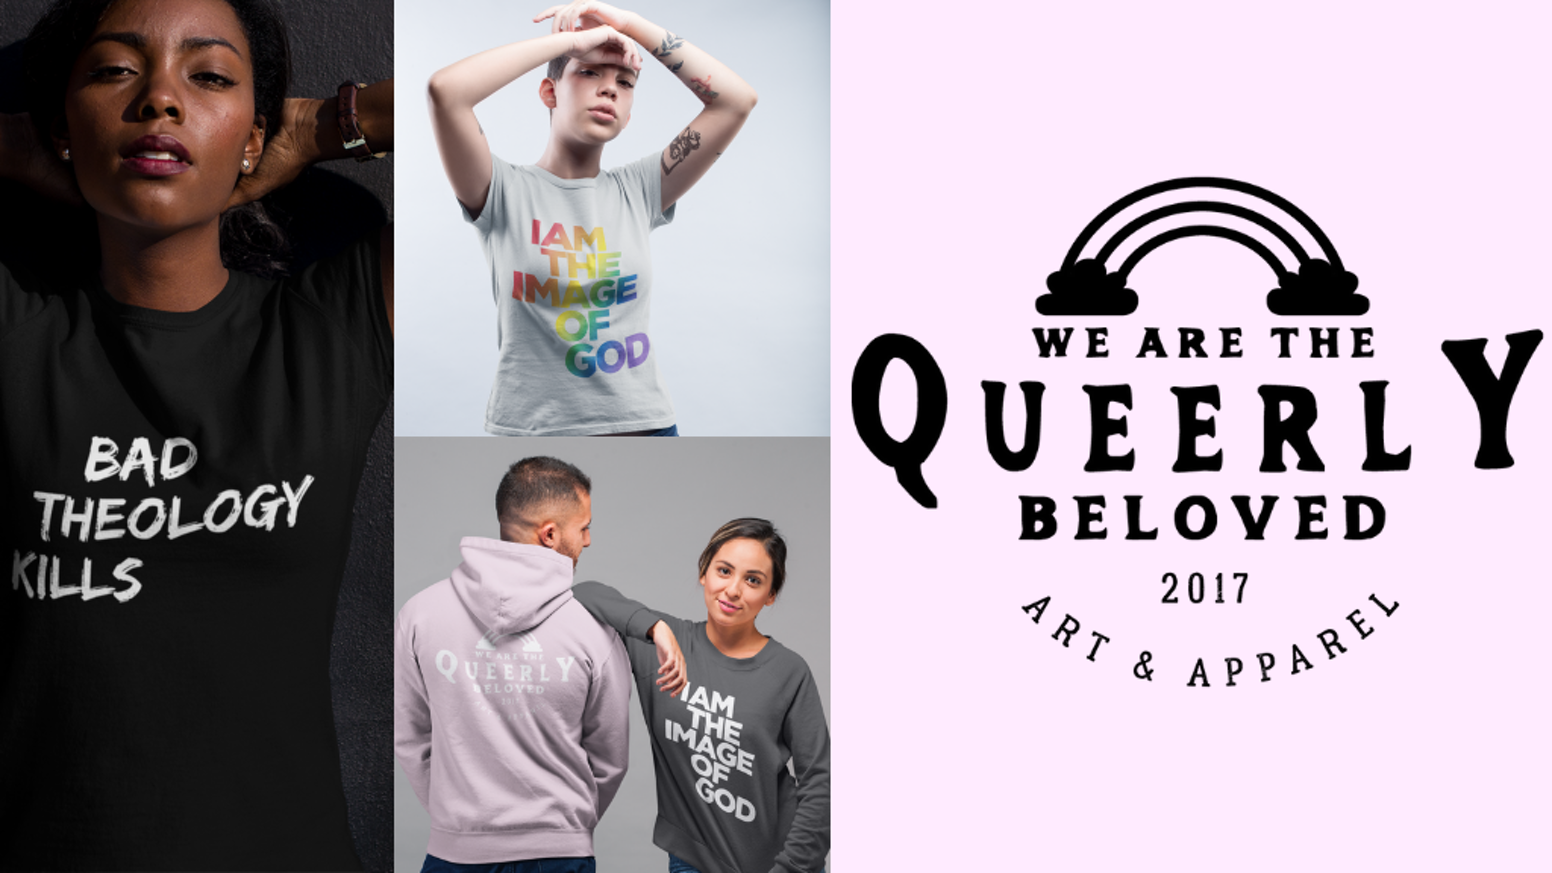 An apparel line bringing representation and voice to queer people of faith.